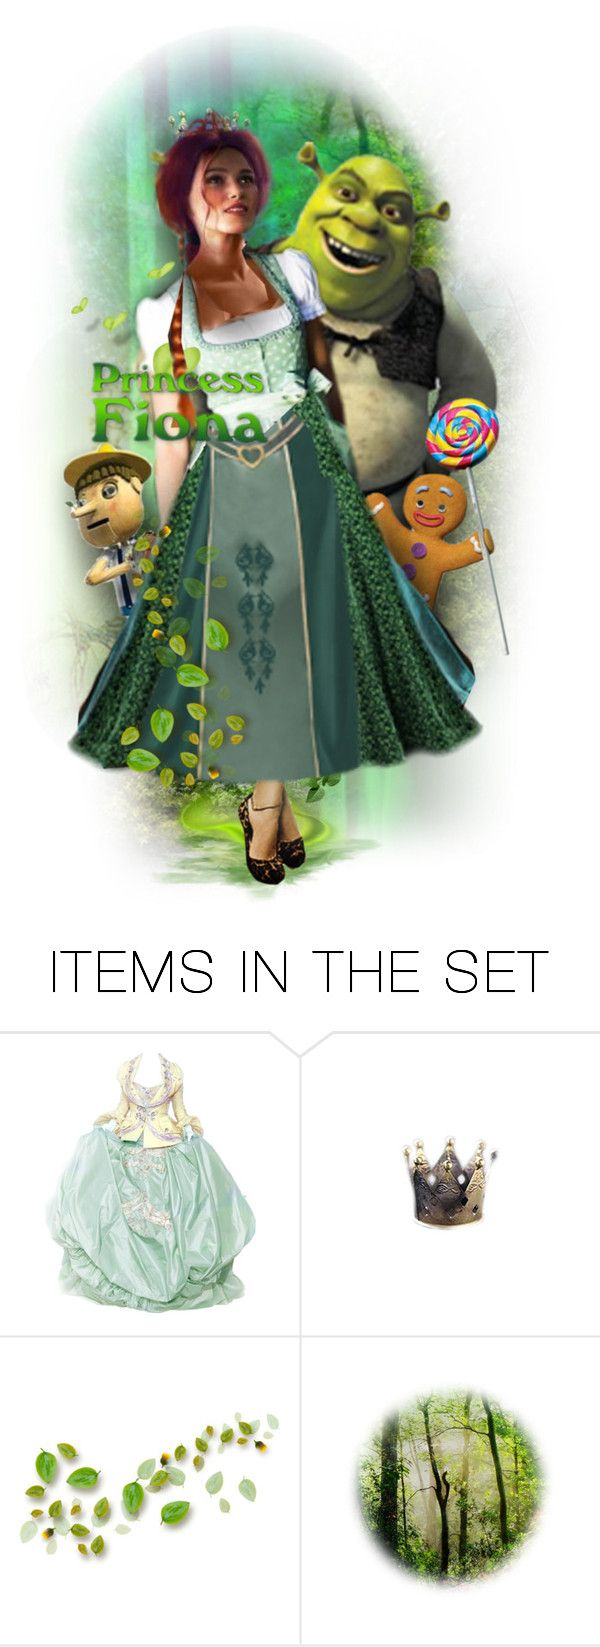 """""""Princess Fiona"""" by rosie305 ❤ liked on Polyvore featuring art and artdoll"""